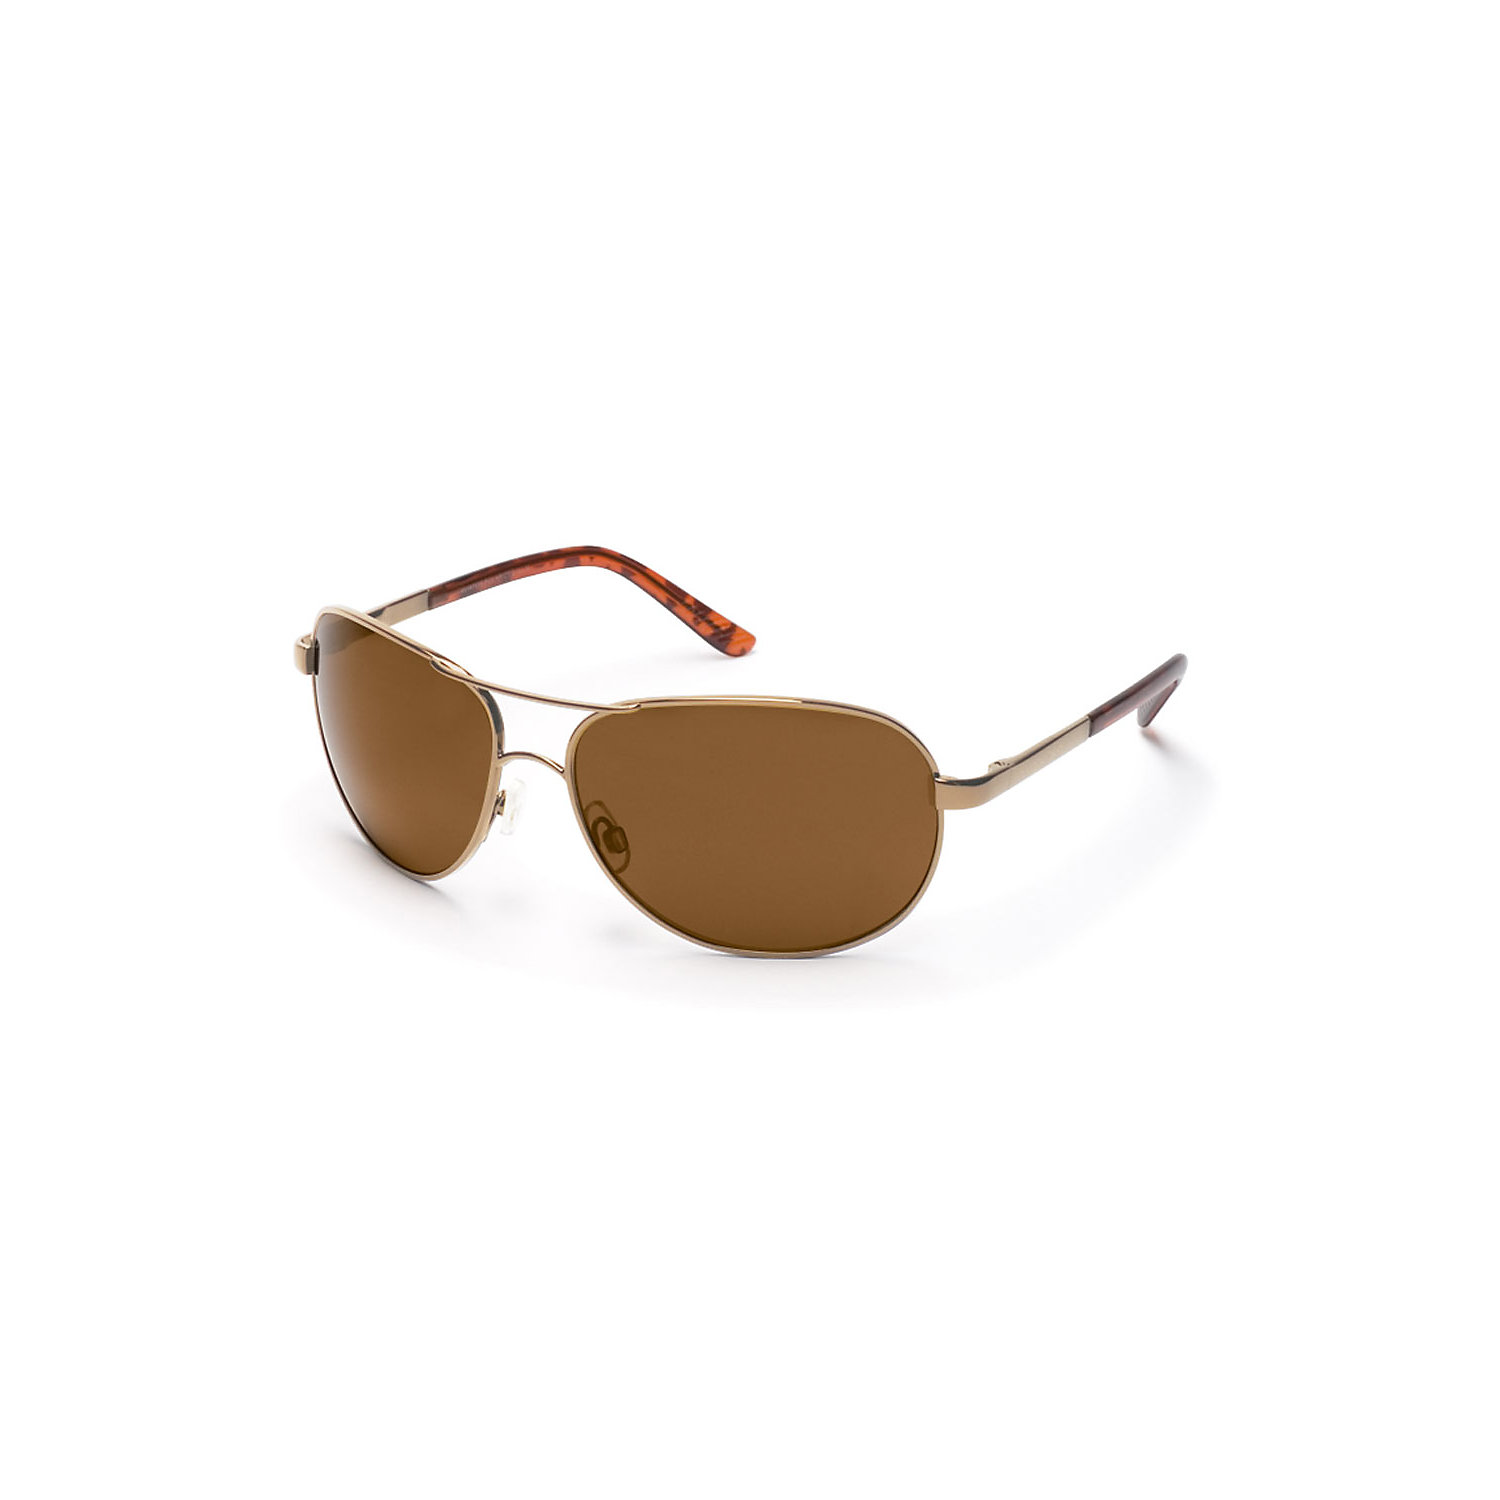 654e116d6907 Suncloud Aviator Polarized Sunglasses. Double tap to zoom